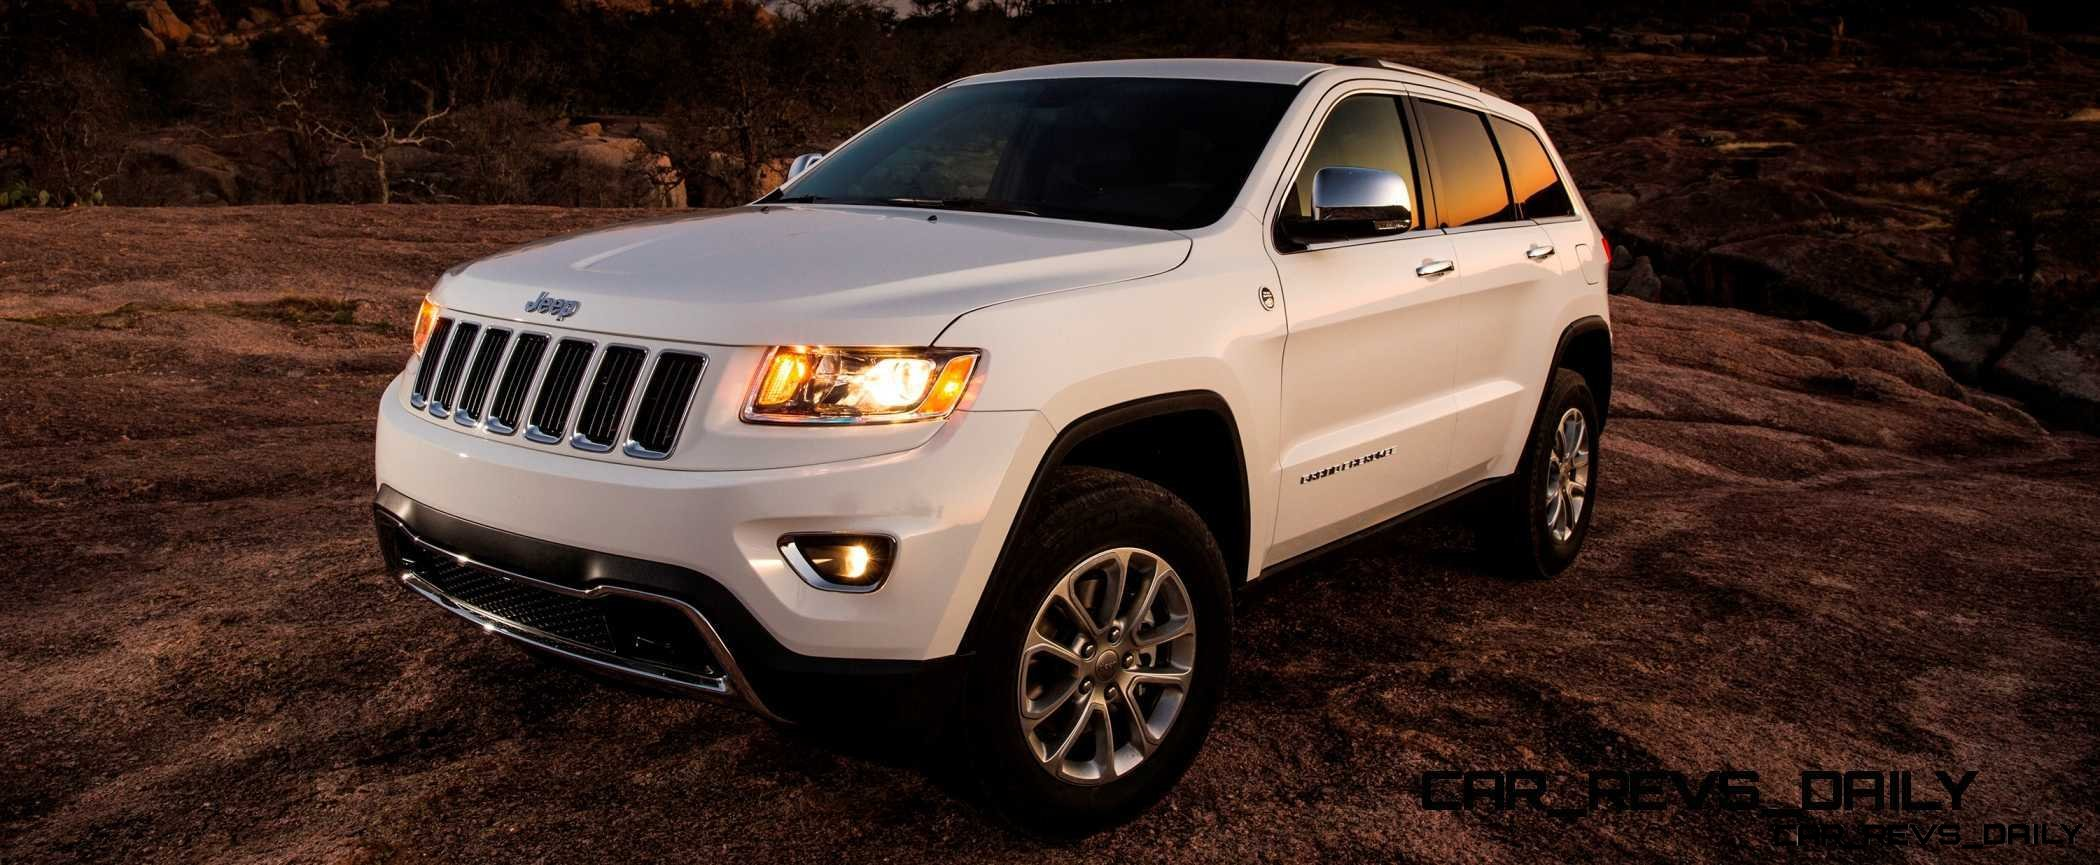 2014 jeep grand cherokee laredo from 29 000. Black Bedroom Furniture Sets. Home Design Ideas